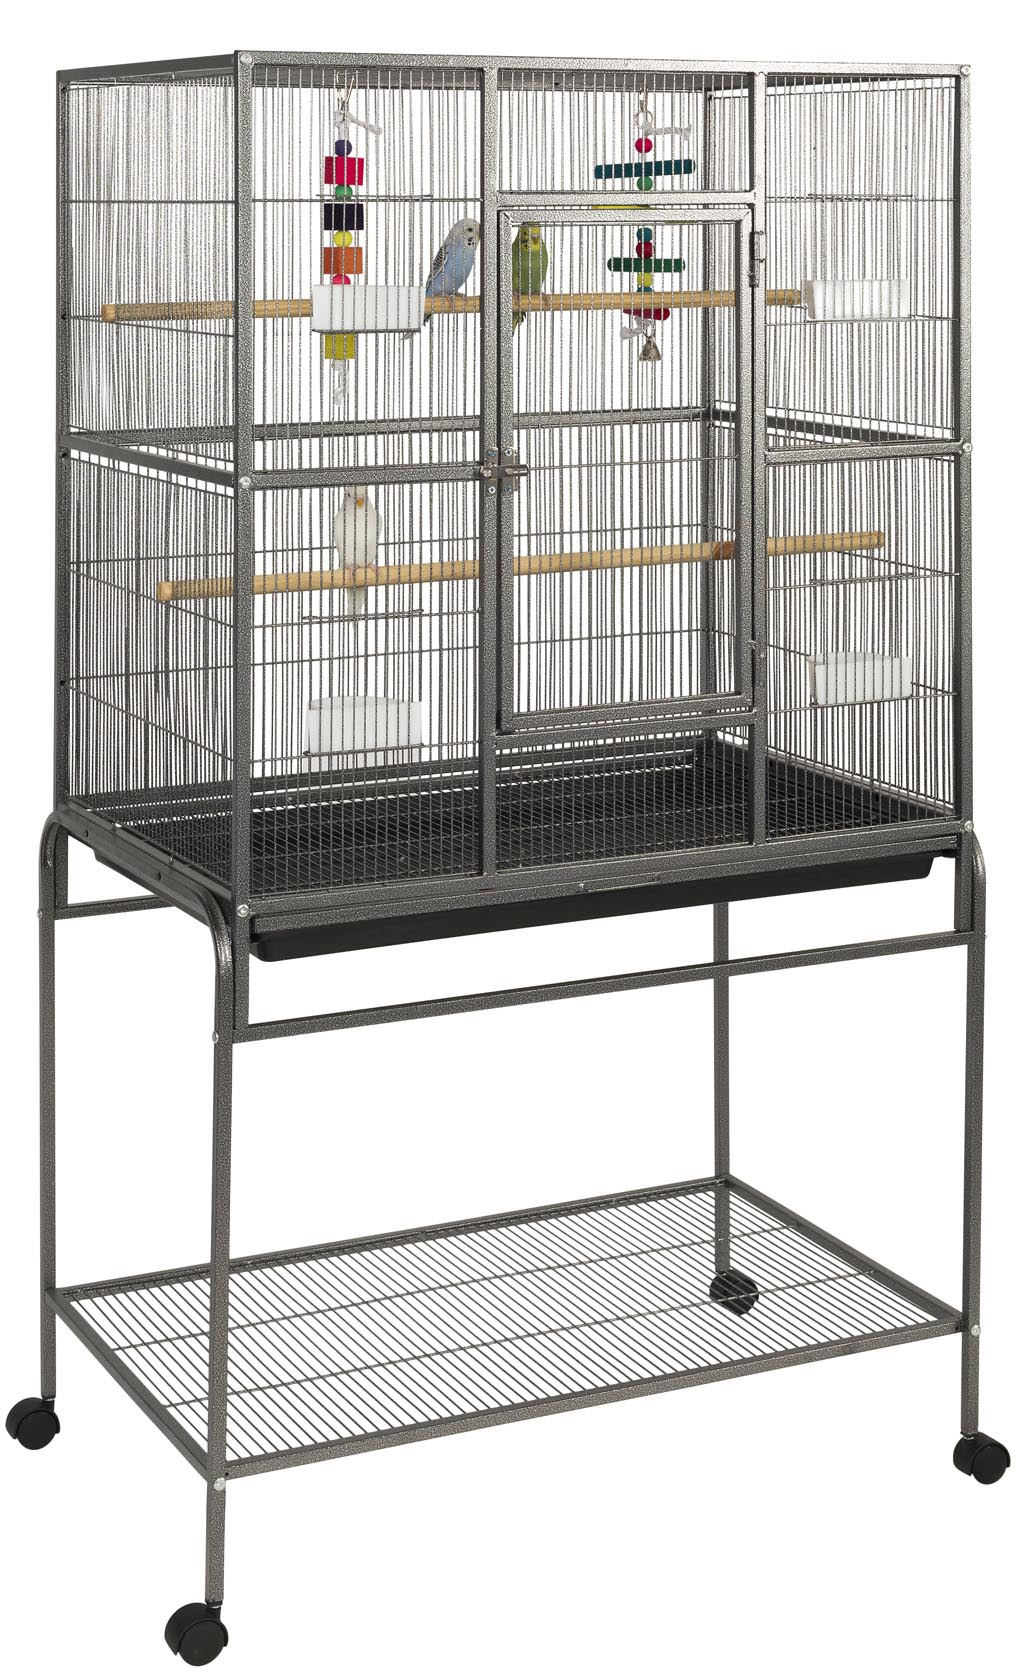 Cage and Aviary Bird